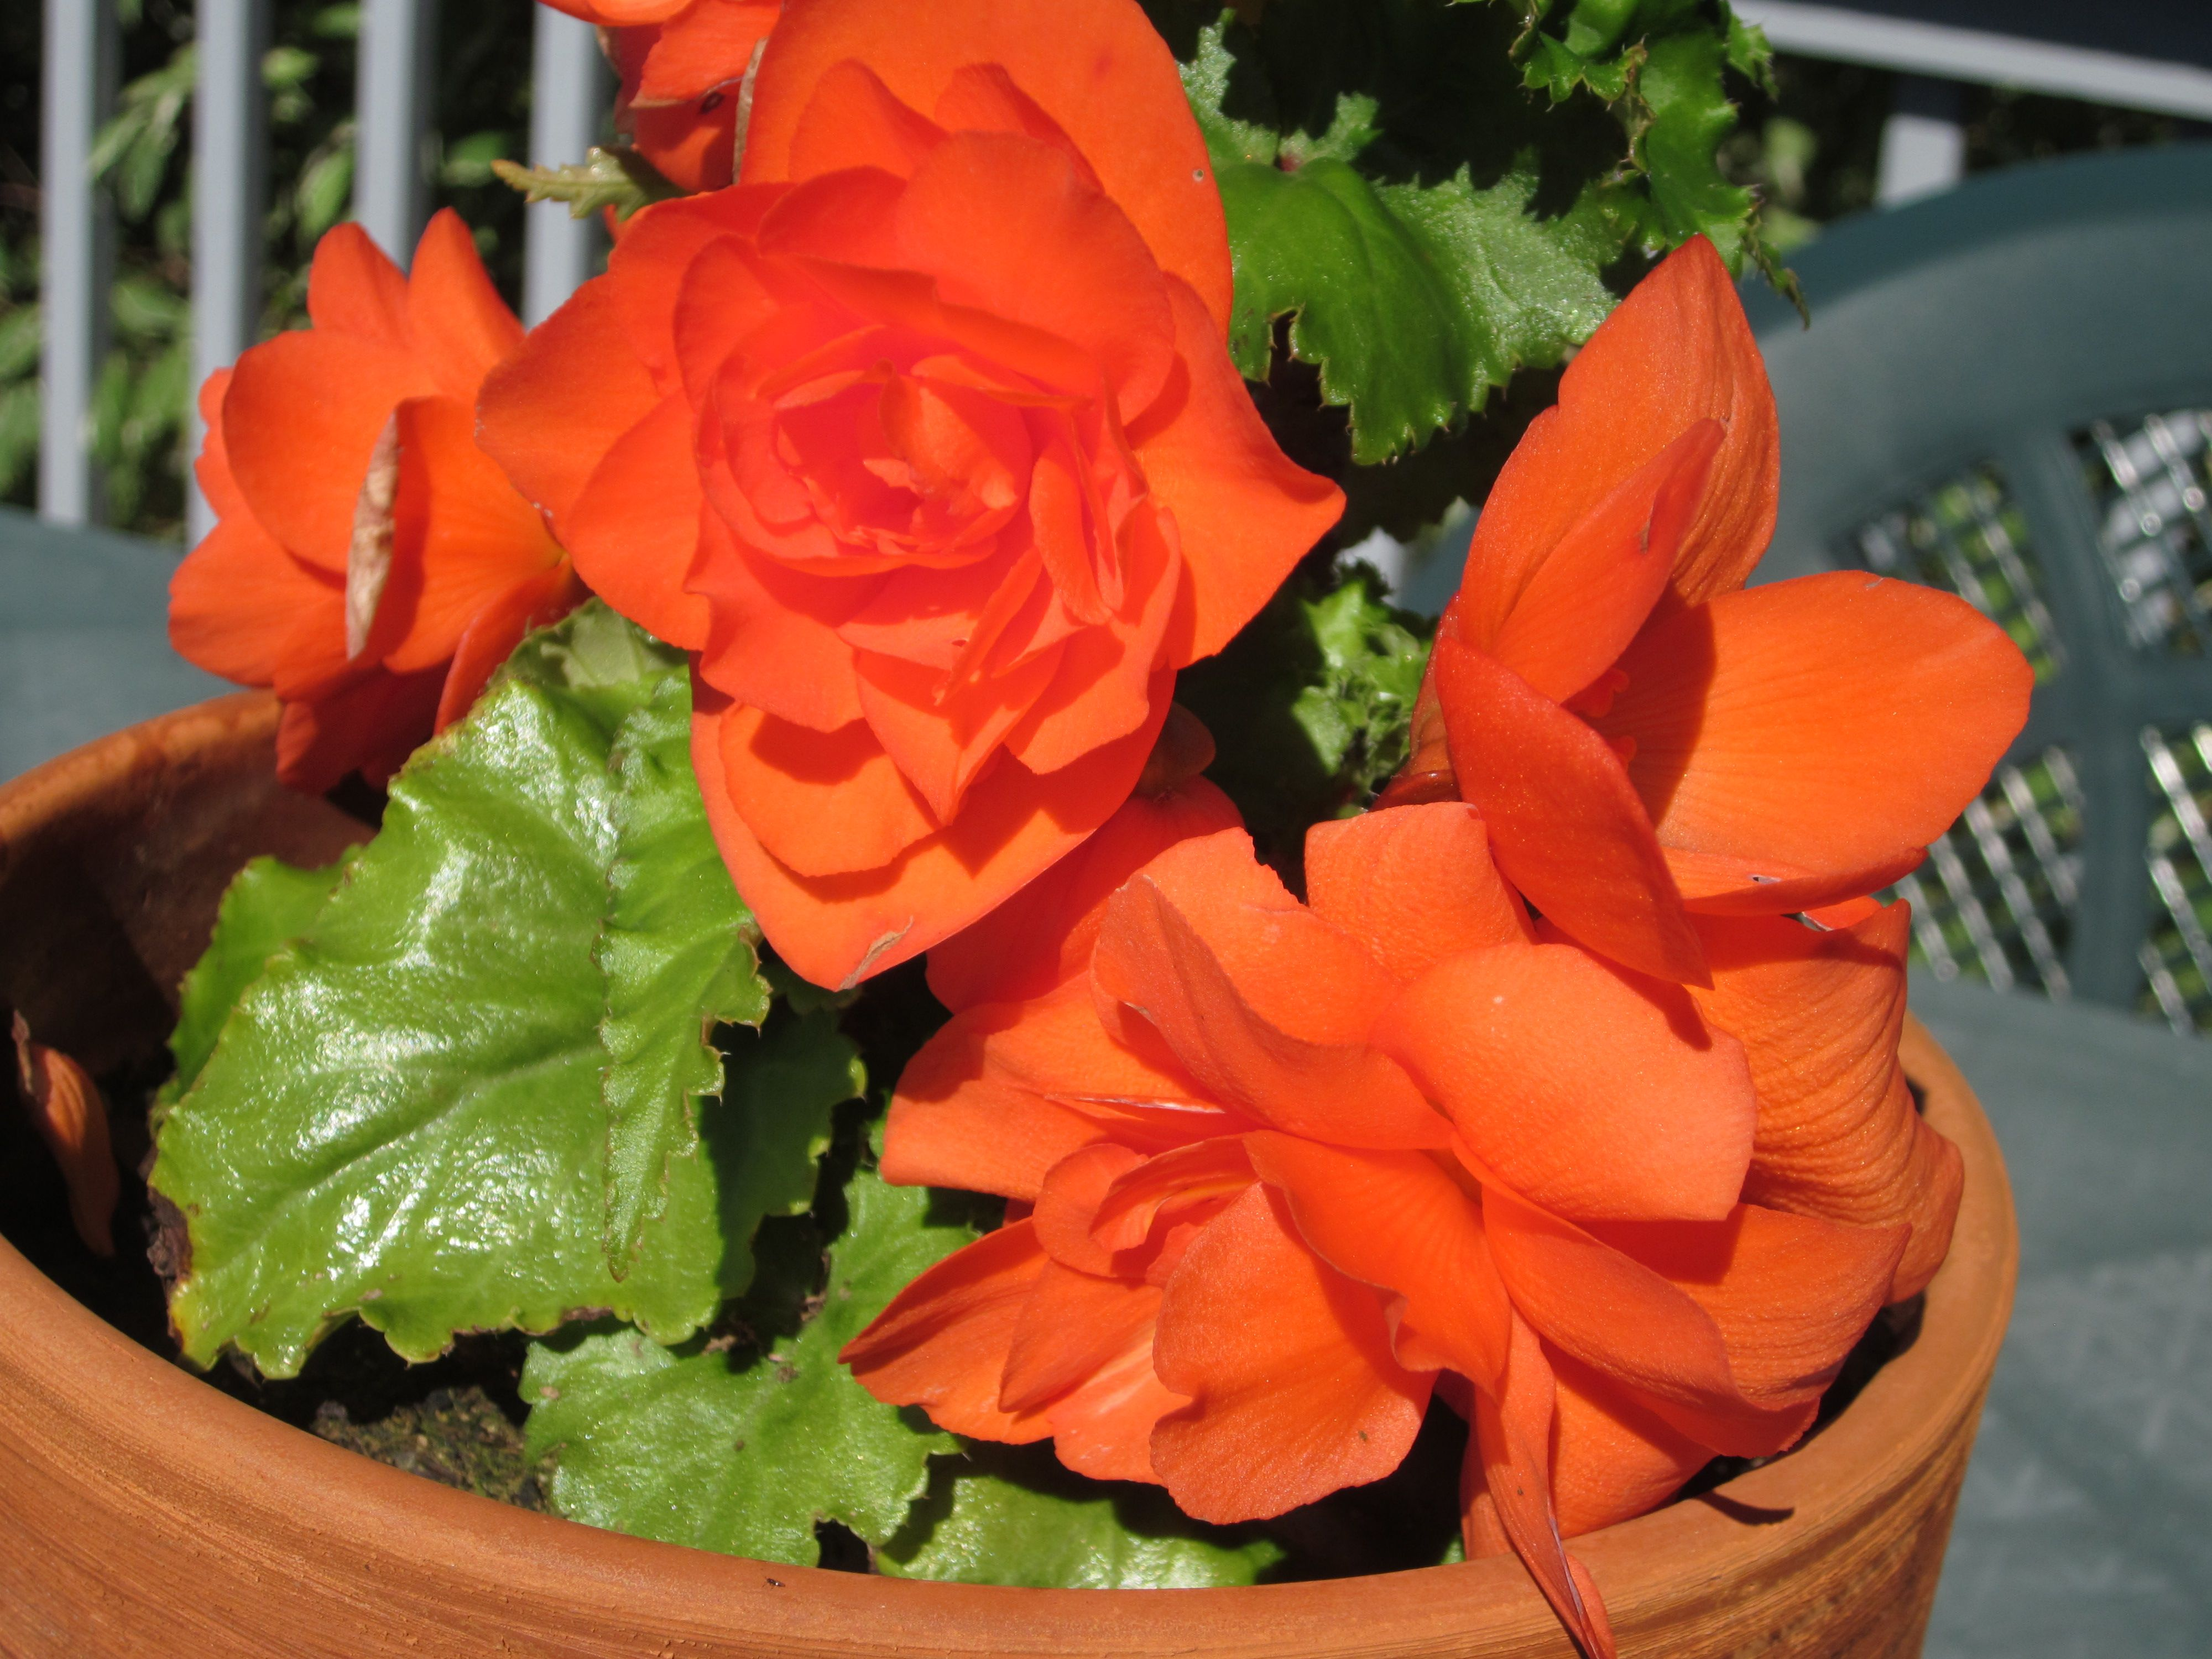 How To Store Tuberous Begonias For Winter And Restart Them In Spring Tuberous Begonia Plants Begonia